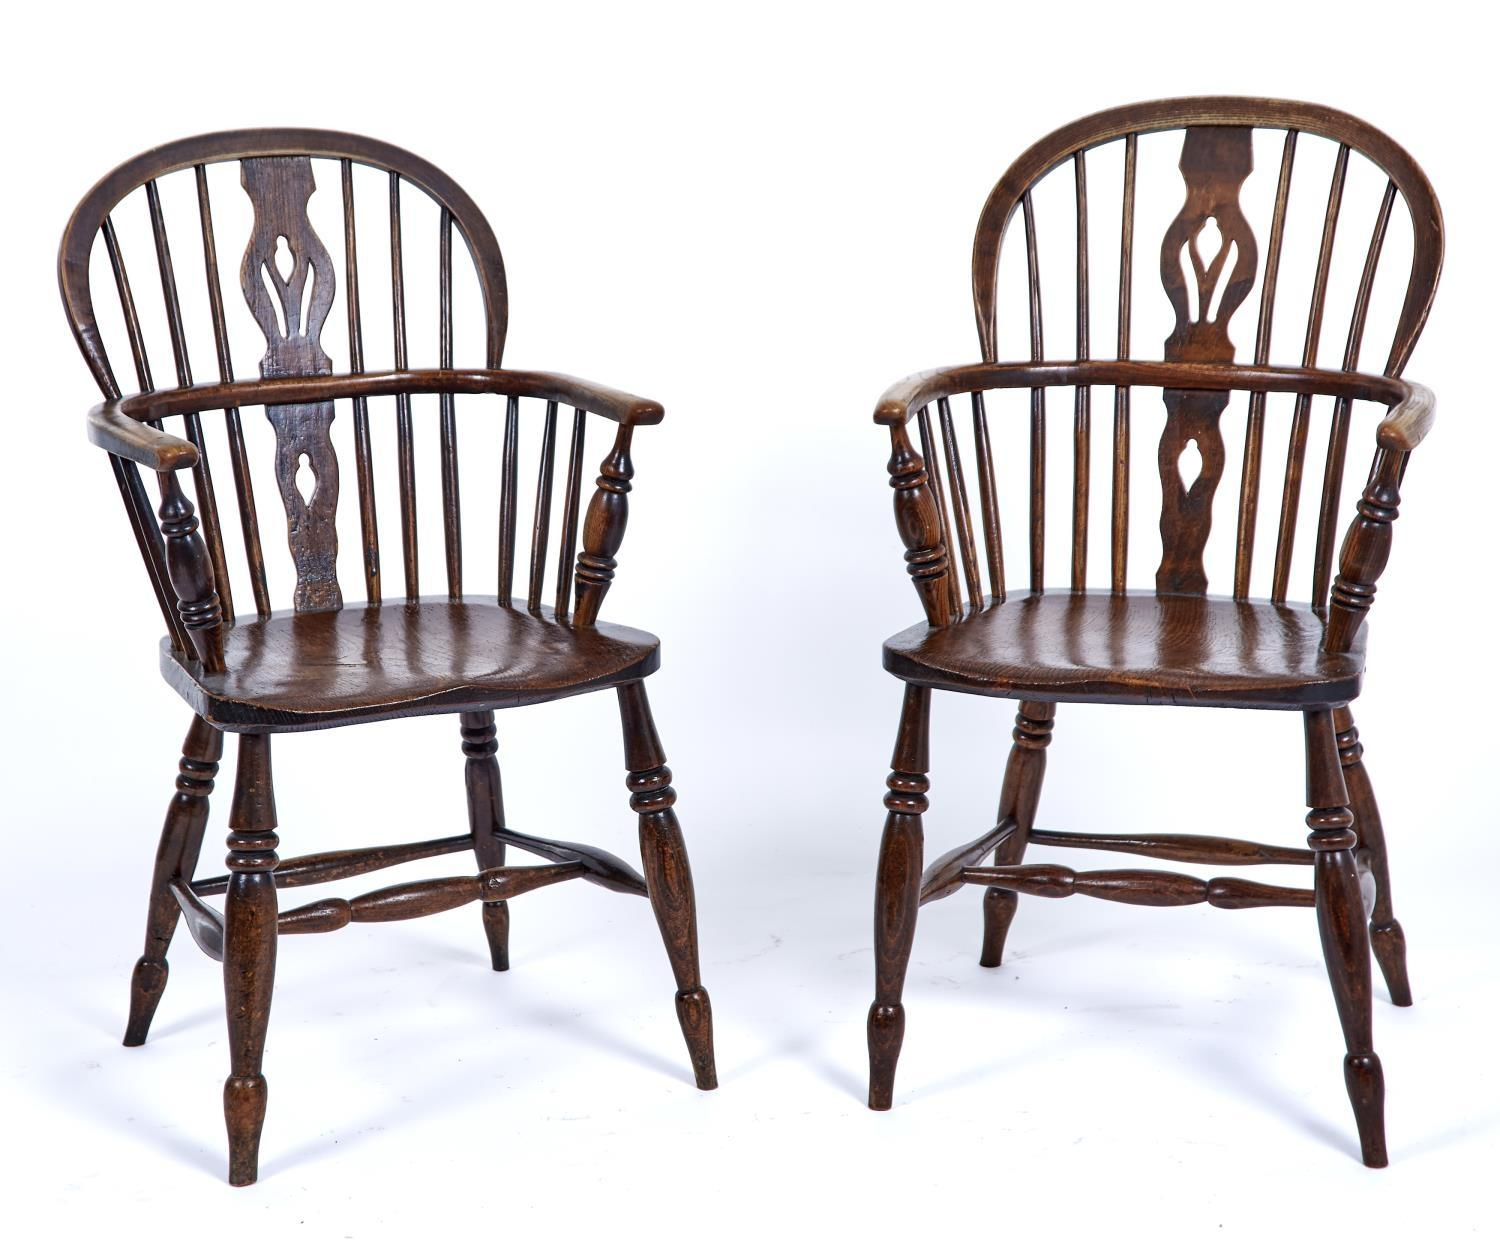 A PAIR OF ASH AND ELM WINDSOR ELBOW CHAIRS, MID 19TH C, PIERCED SPLATS FLANKED BY SPINDLES, DISHED